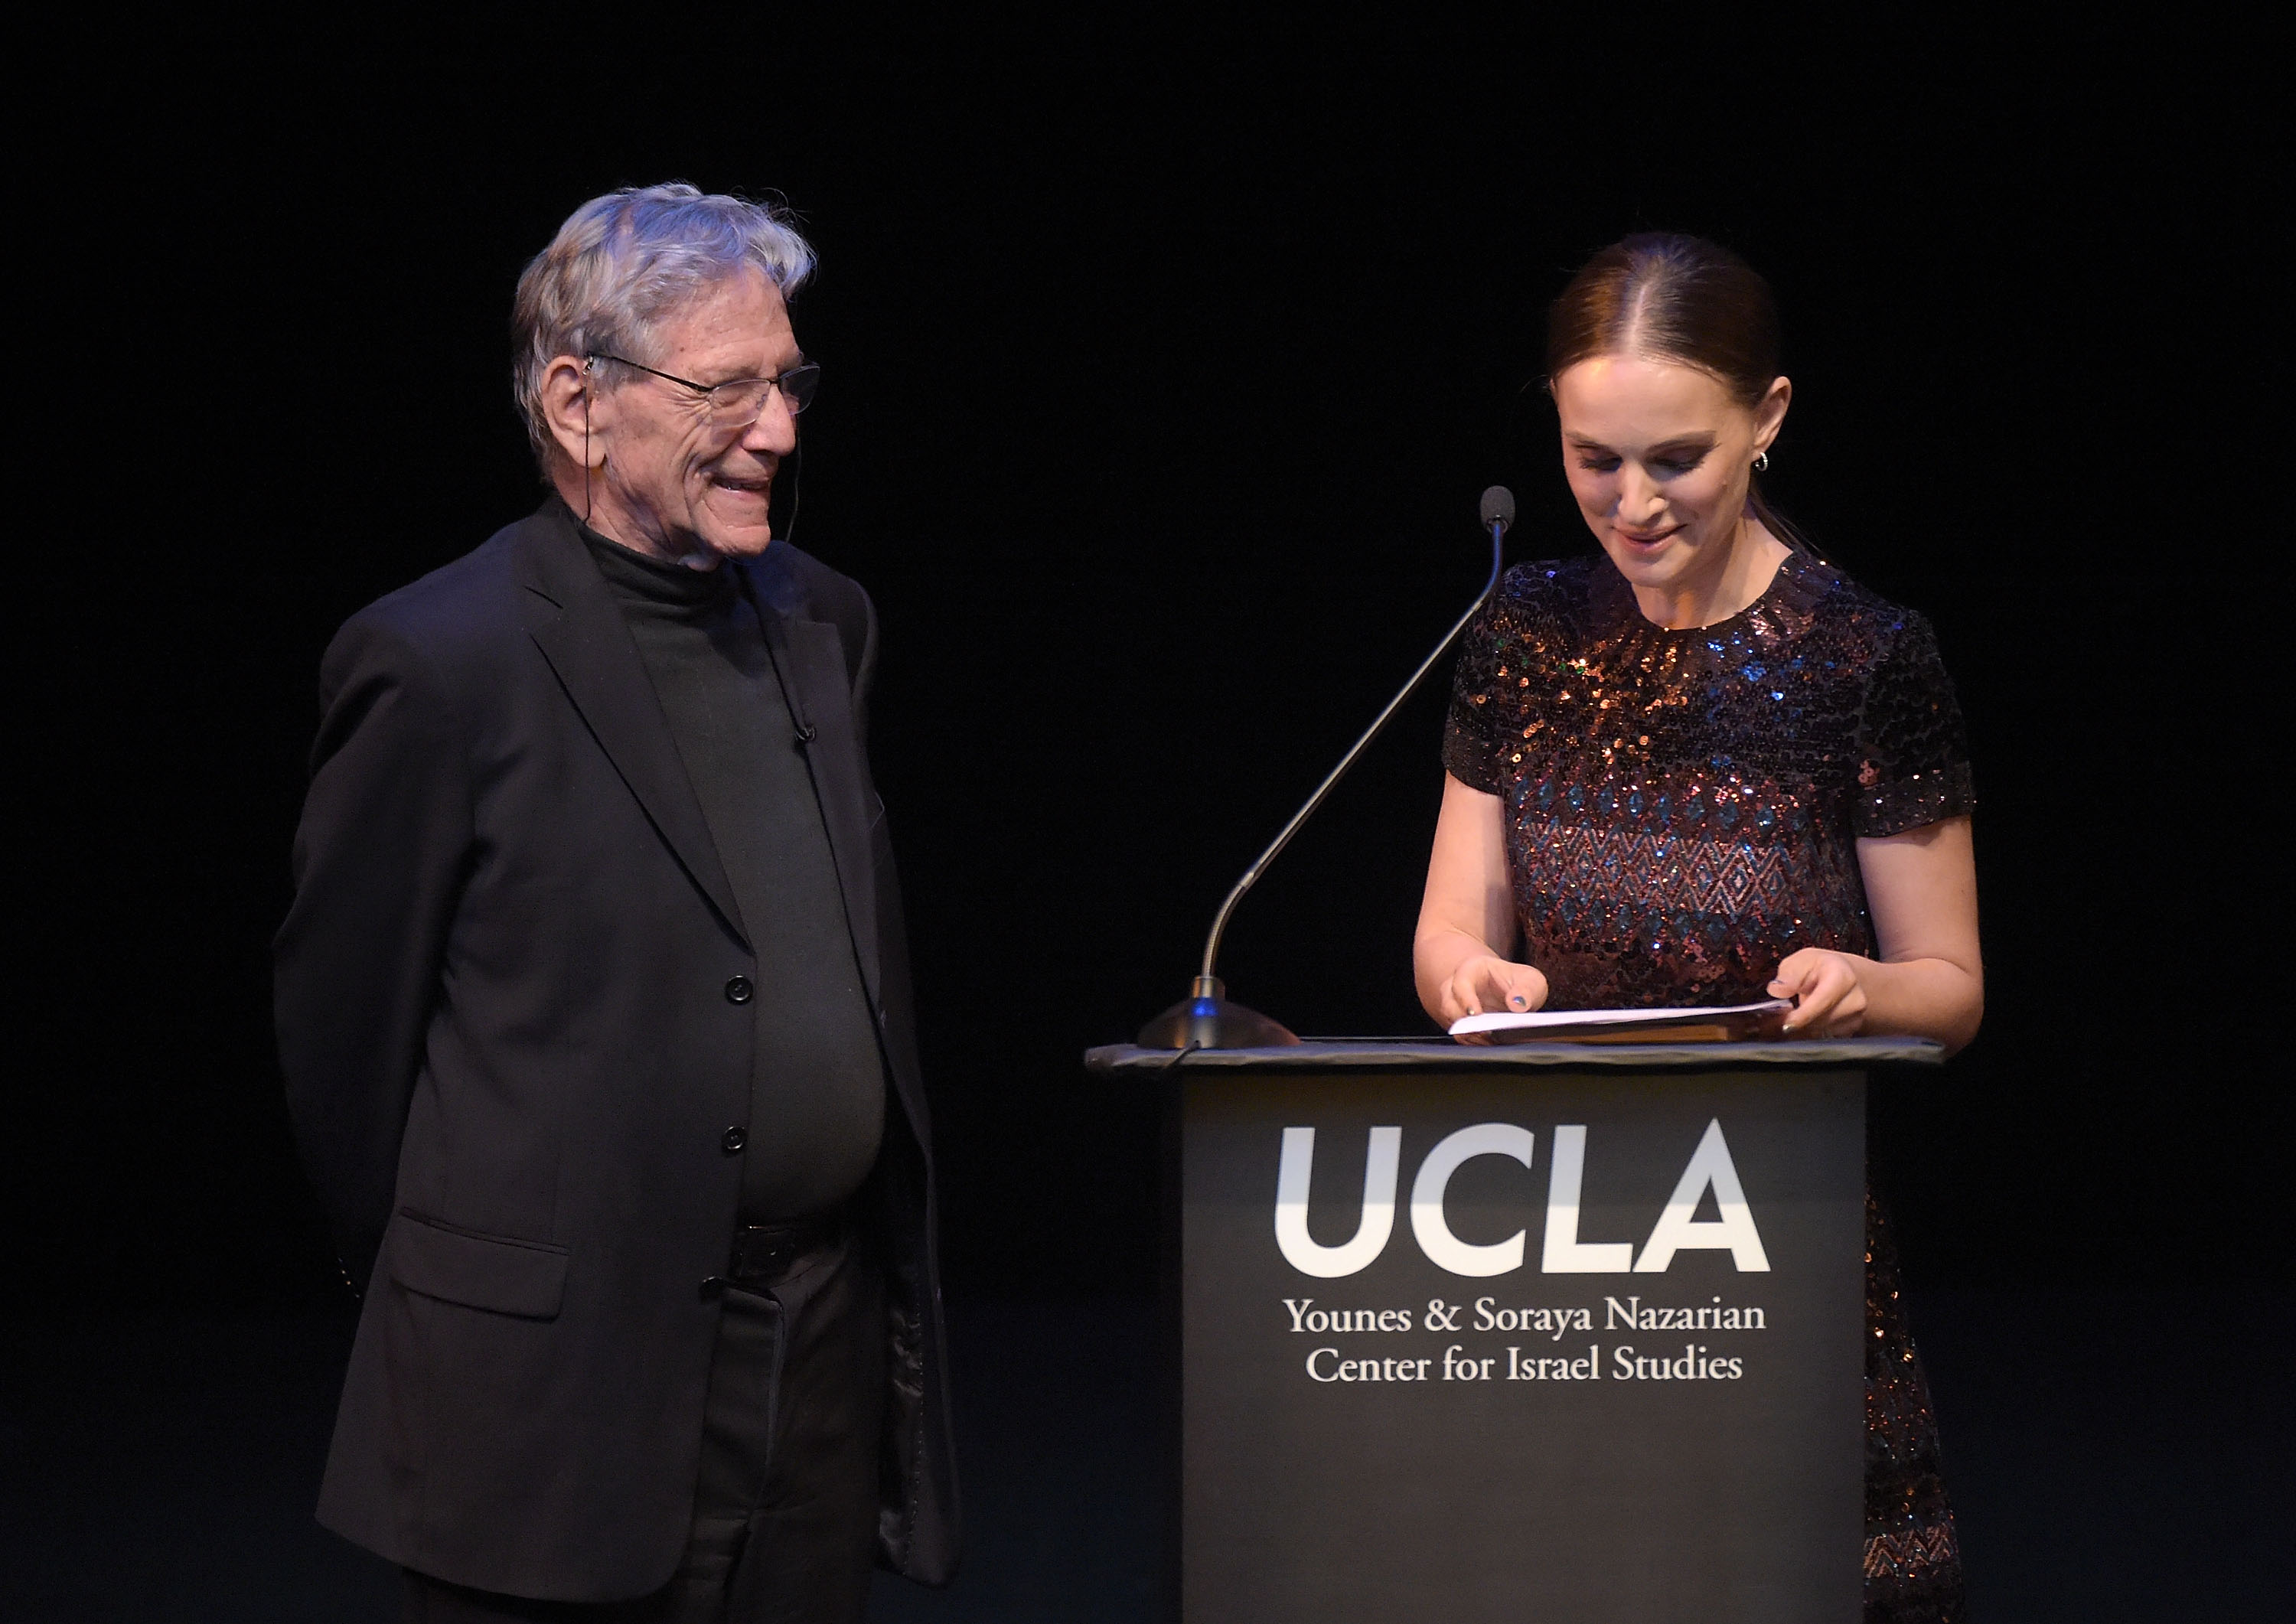 BEVERLY HILLS, CA - MAY 05:  Author Amos Oz and actress Natalie Portman attend the UCLA Younes & Soraya Nazarian Center For Israel Studies 5th Annual Gala at Wallis Annenberg Center for the Performing Arts on May 5, 2015 in Beverly Hills, California.  (Photo by Jason Kempin/Getty Images)